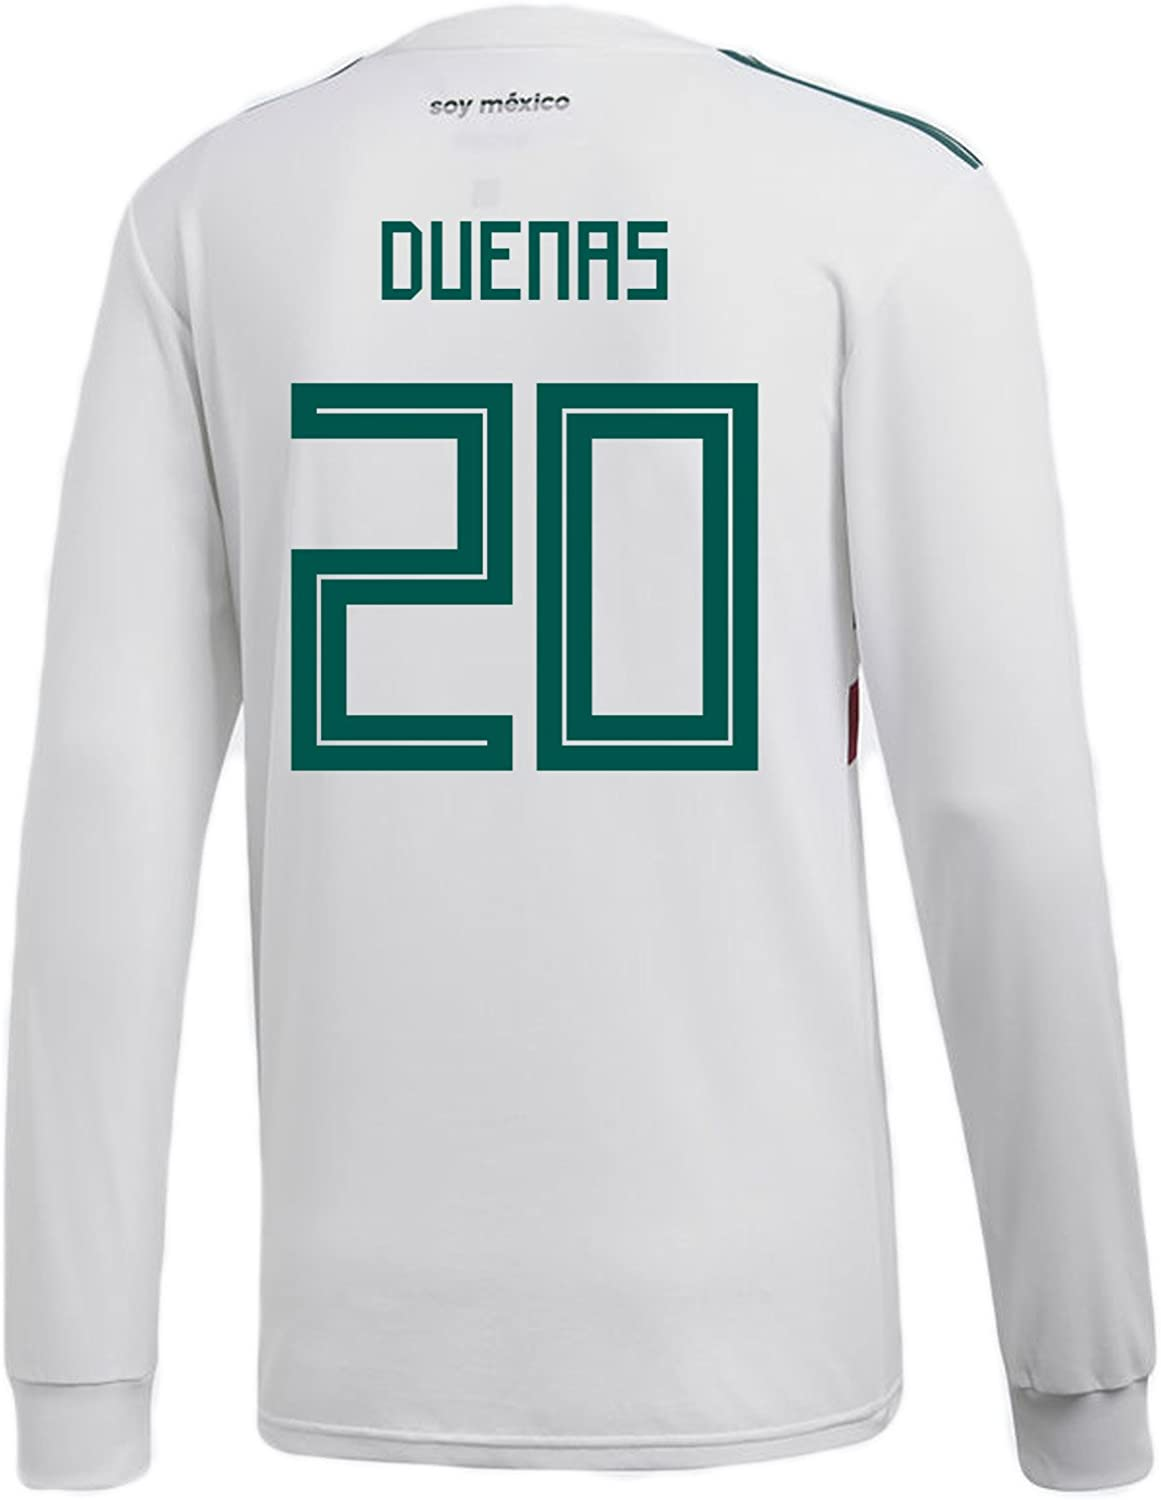 Adidas Duenas  20 Mexico Away Men's Long Sleeve Soccer Jersey World Cup Russia 2018